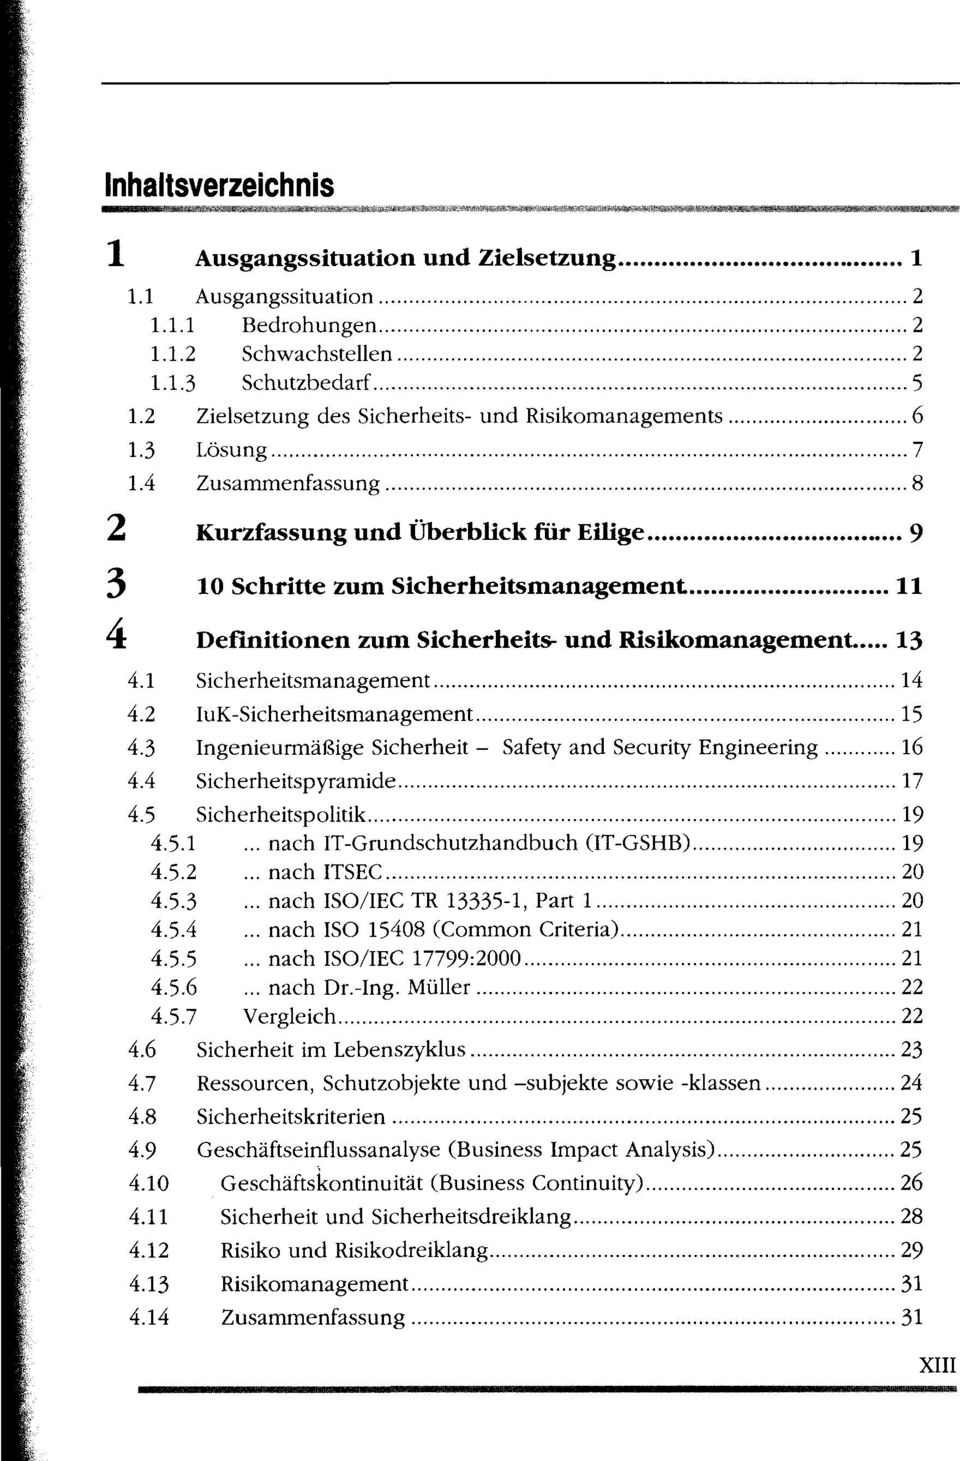 4 Zusammenfassung 8 2 Kurzfassung und Überblick für Eilige 9 3 10 Schritte zum Sicherheitsmanagement 11 4t Definitionen zum Sicherheits- und Risikomanagement 13 4.1 Sicherheitsmanagement 14 4.